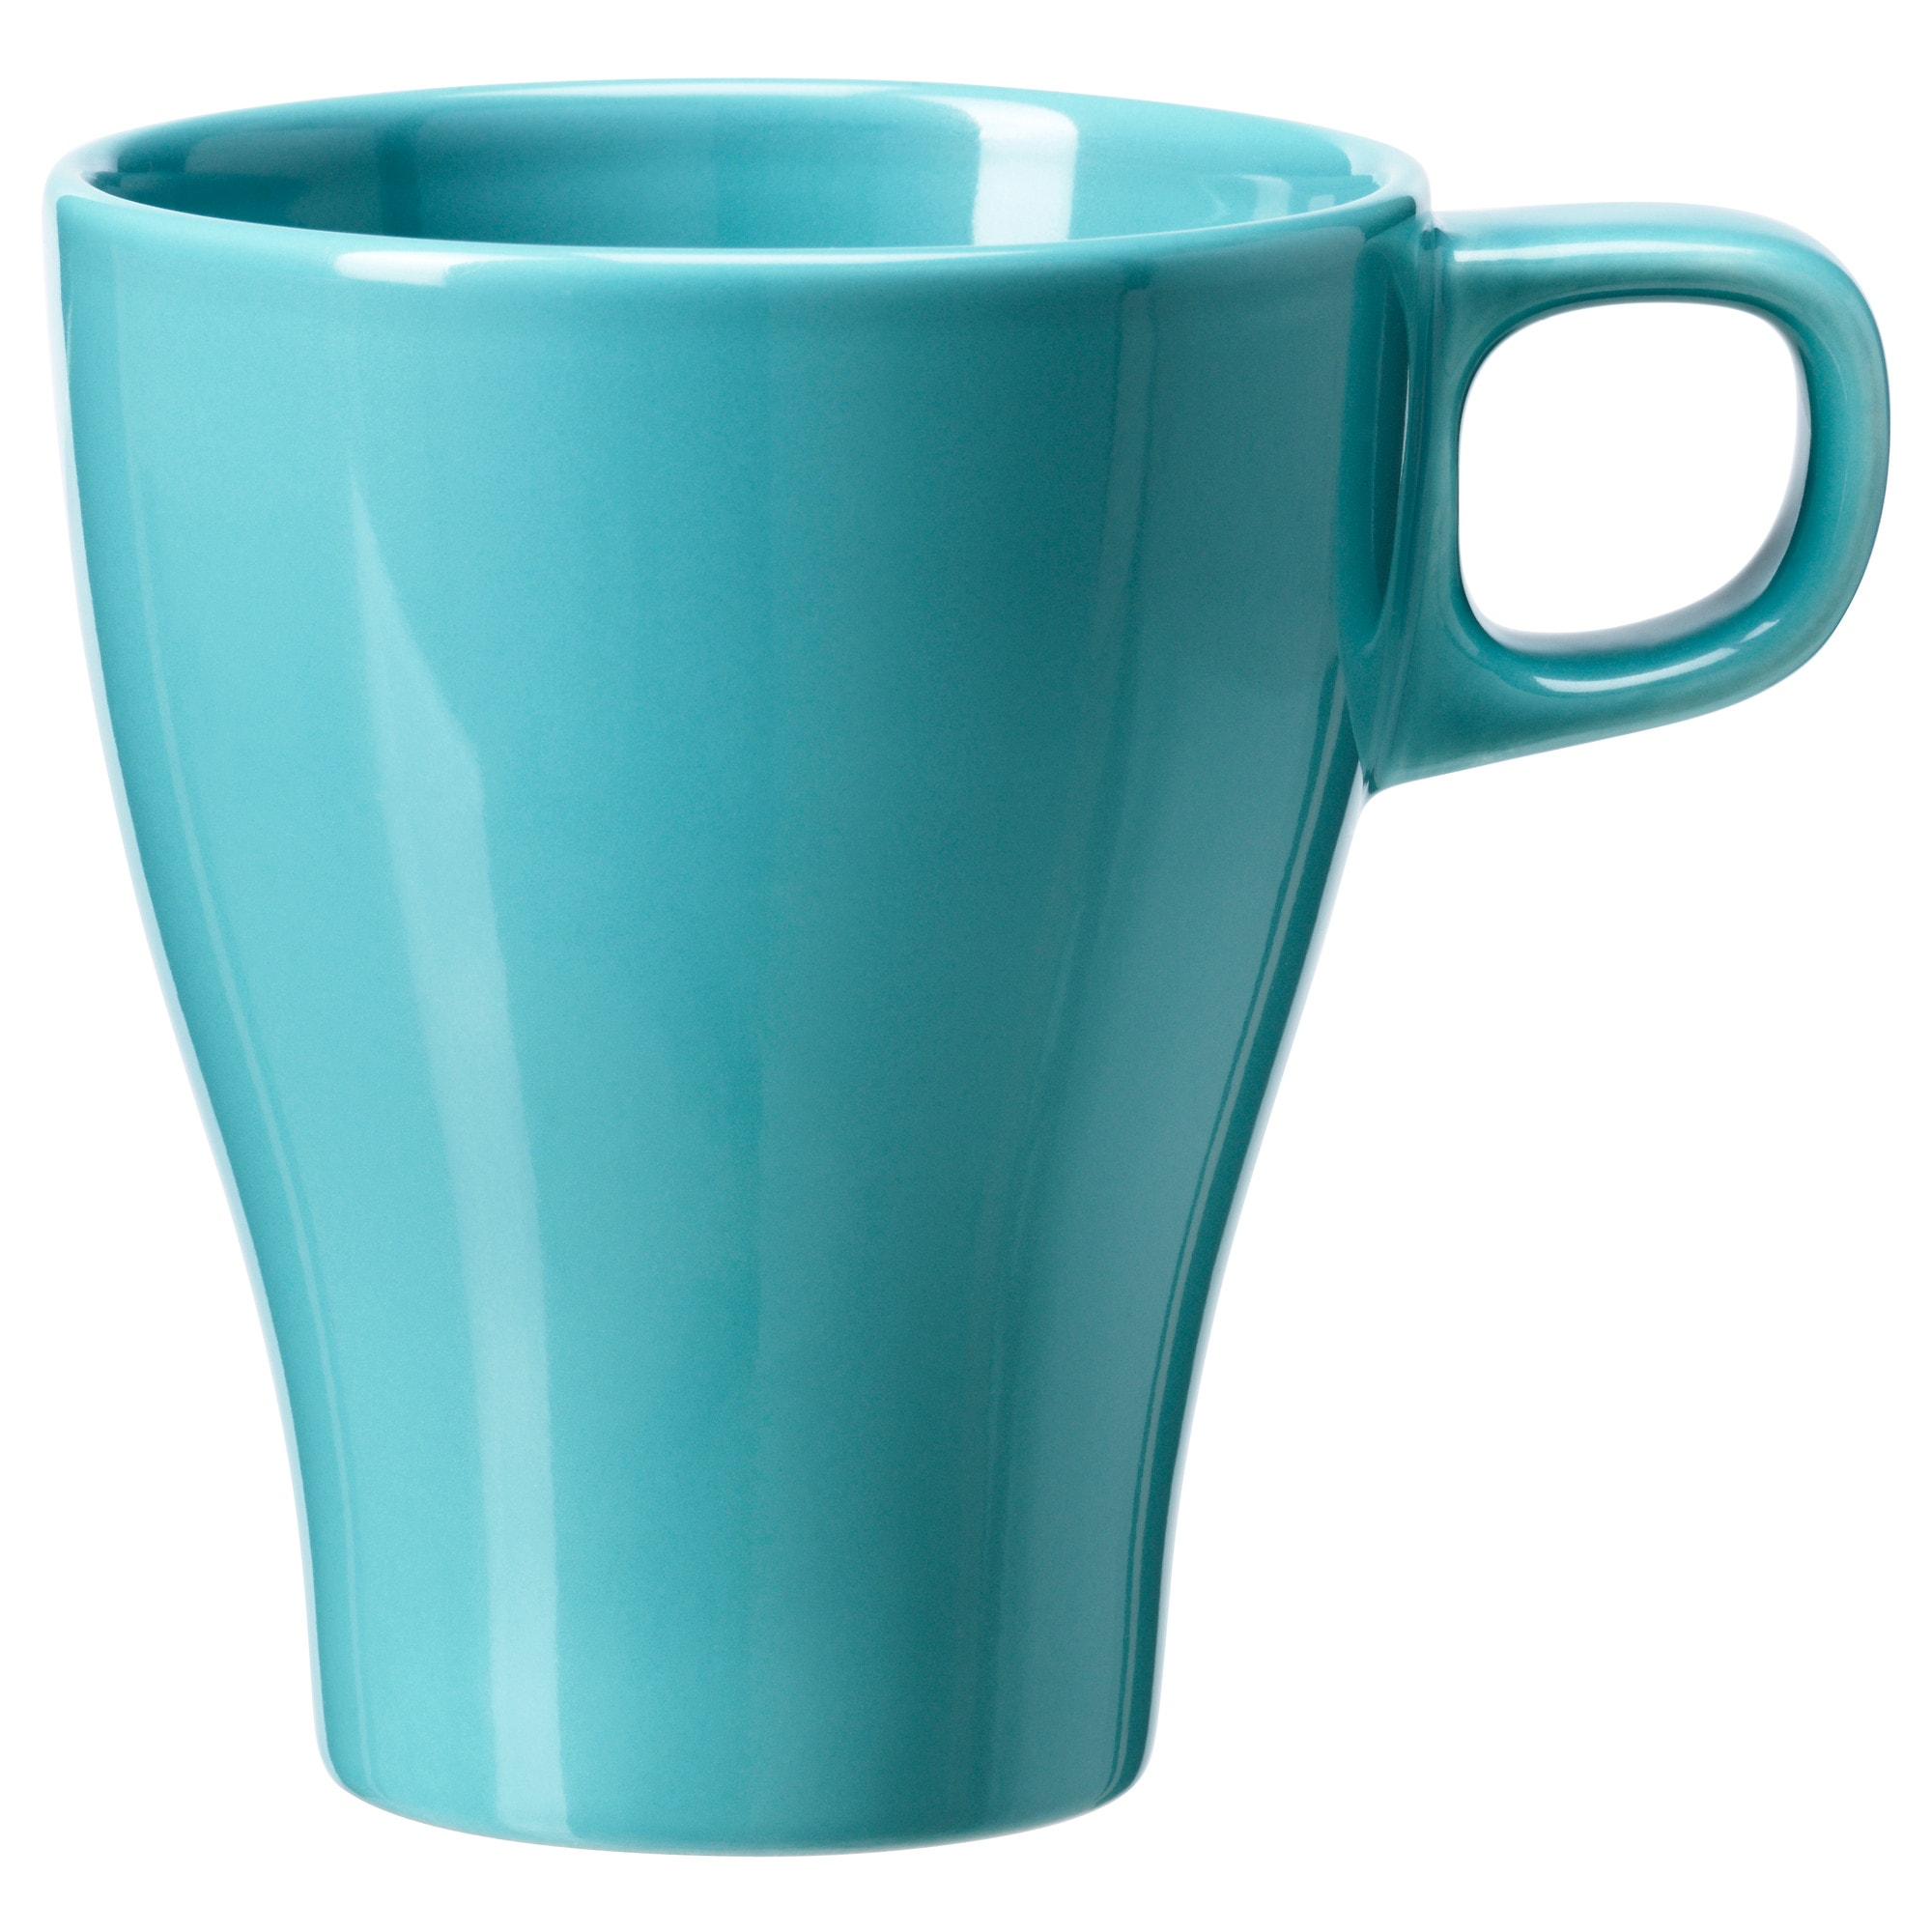 coffee mugs  tea cups  ikea - fÄrgrik mug turquoise height   volume  oz height